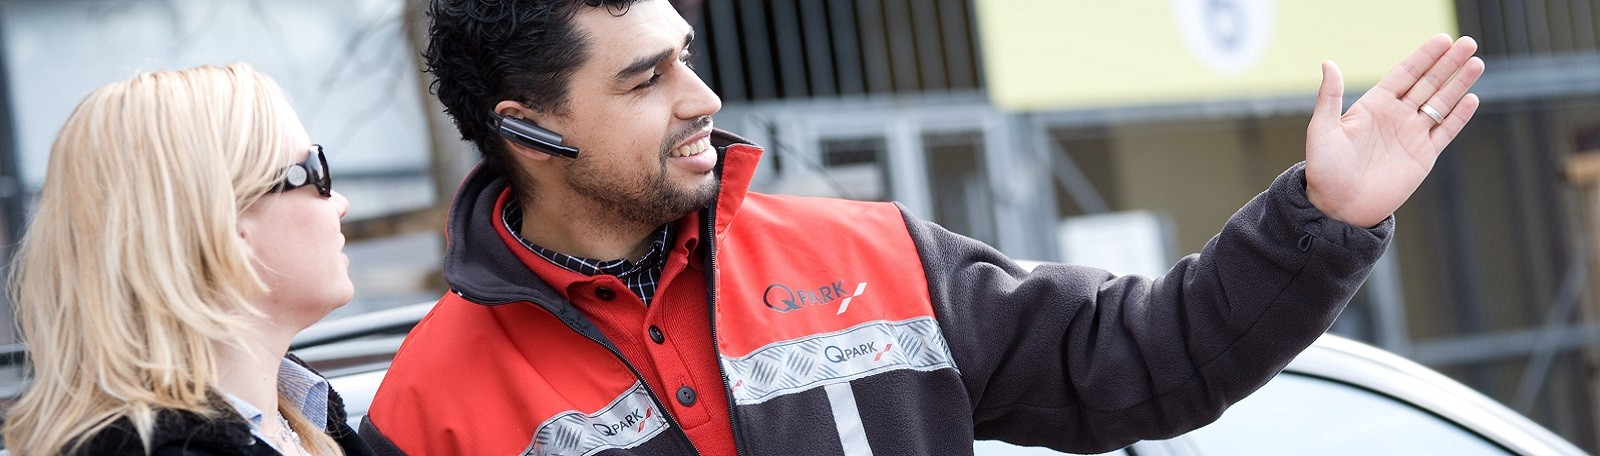 Customer satisfaction - Book your parking space | Q-Park